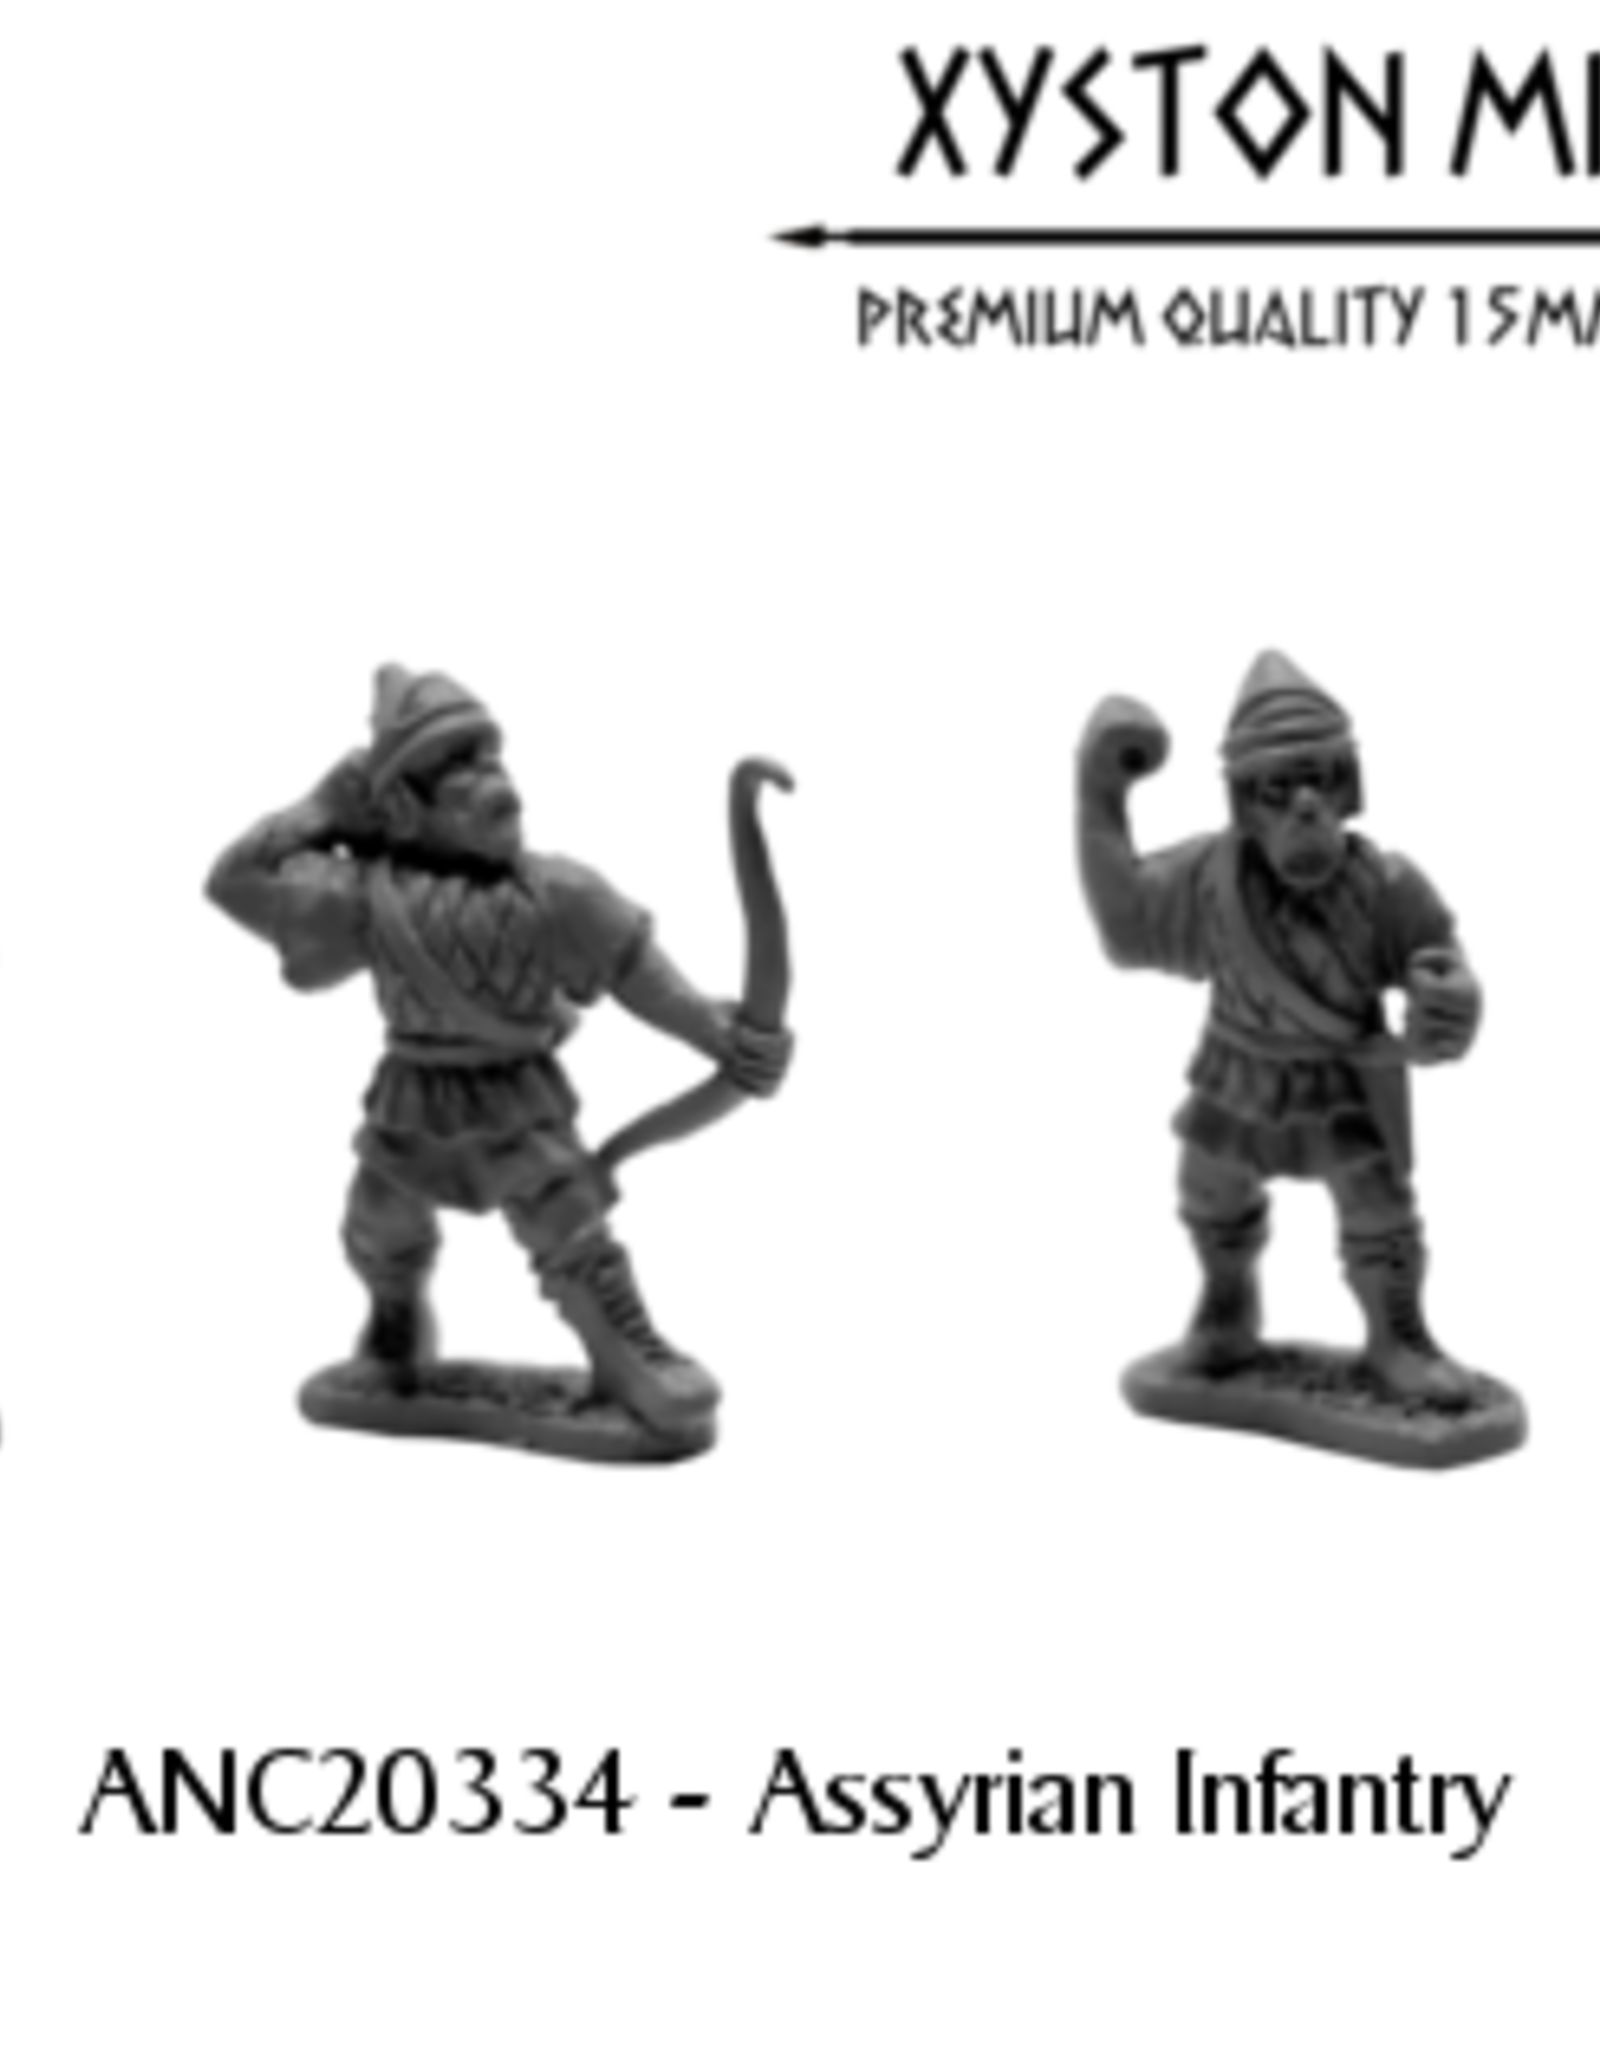 Xyston ANC20334 - Assyrian Infantry